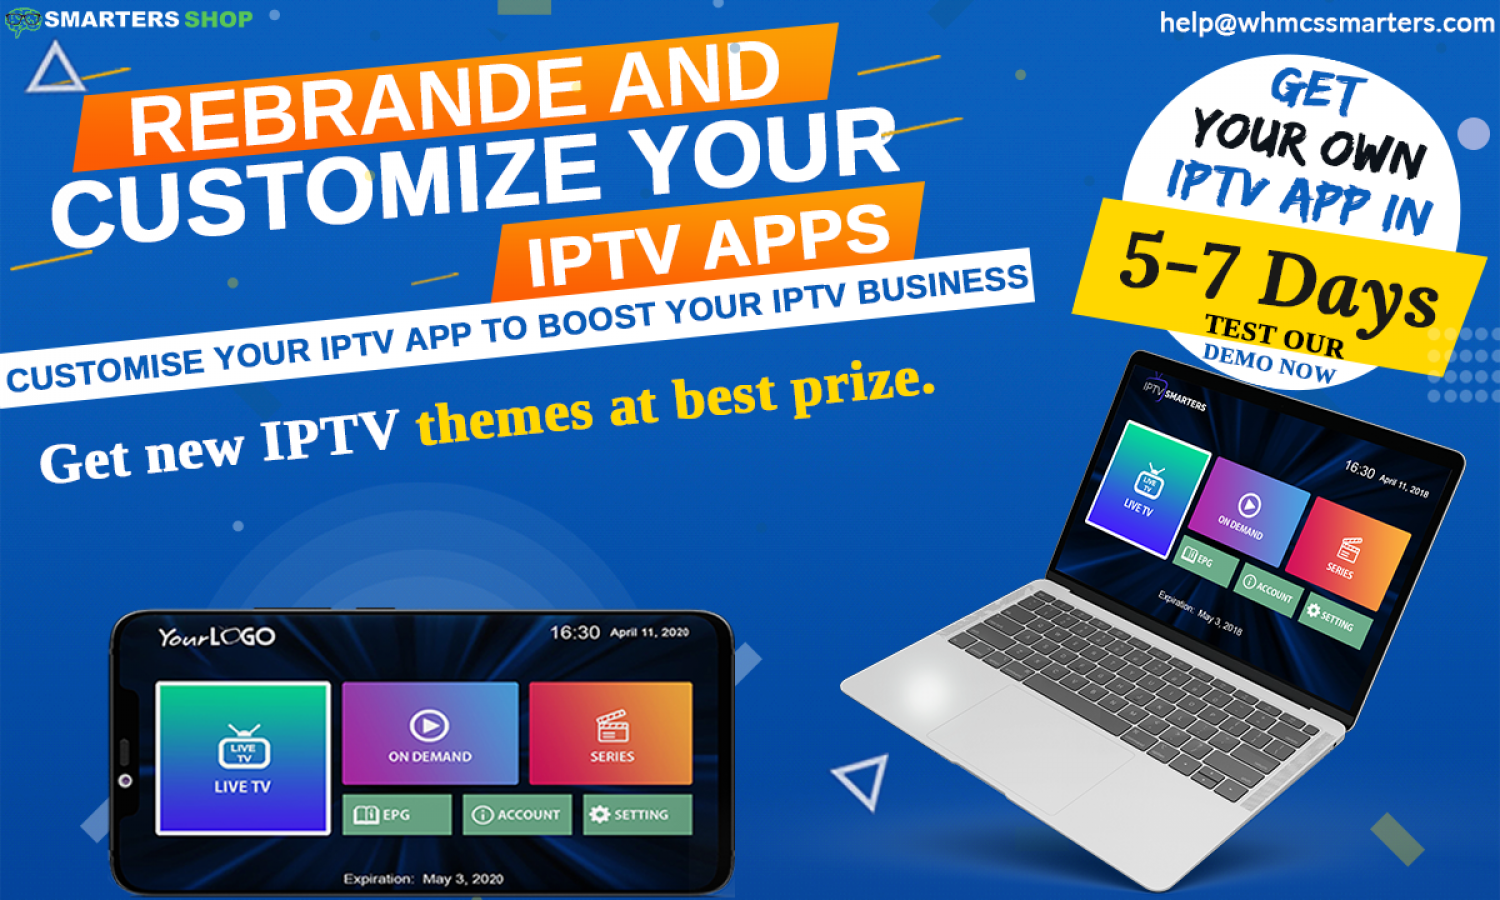 REBRAND AND CUSTOMIZE YOUR IPTV APPS Infographic